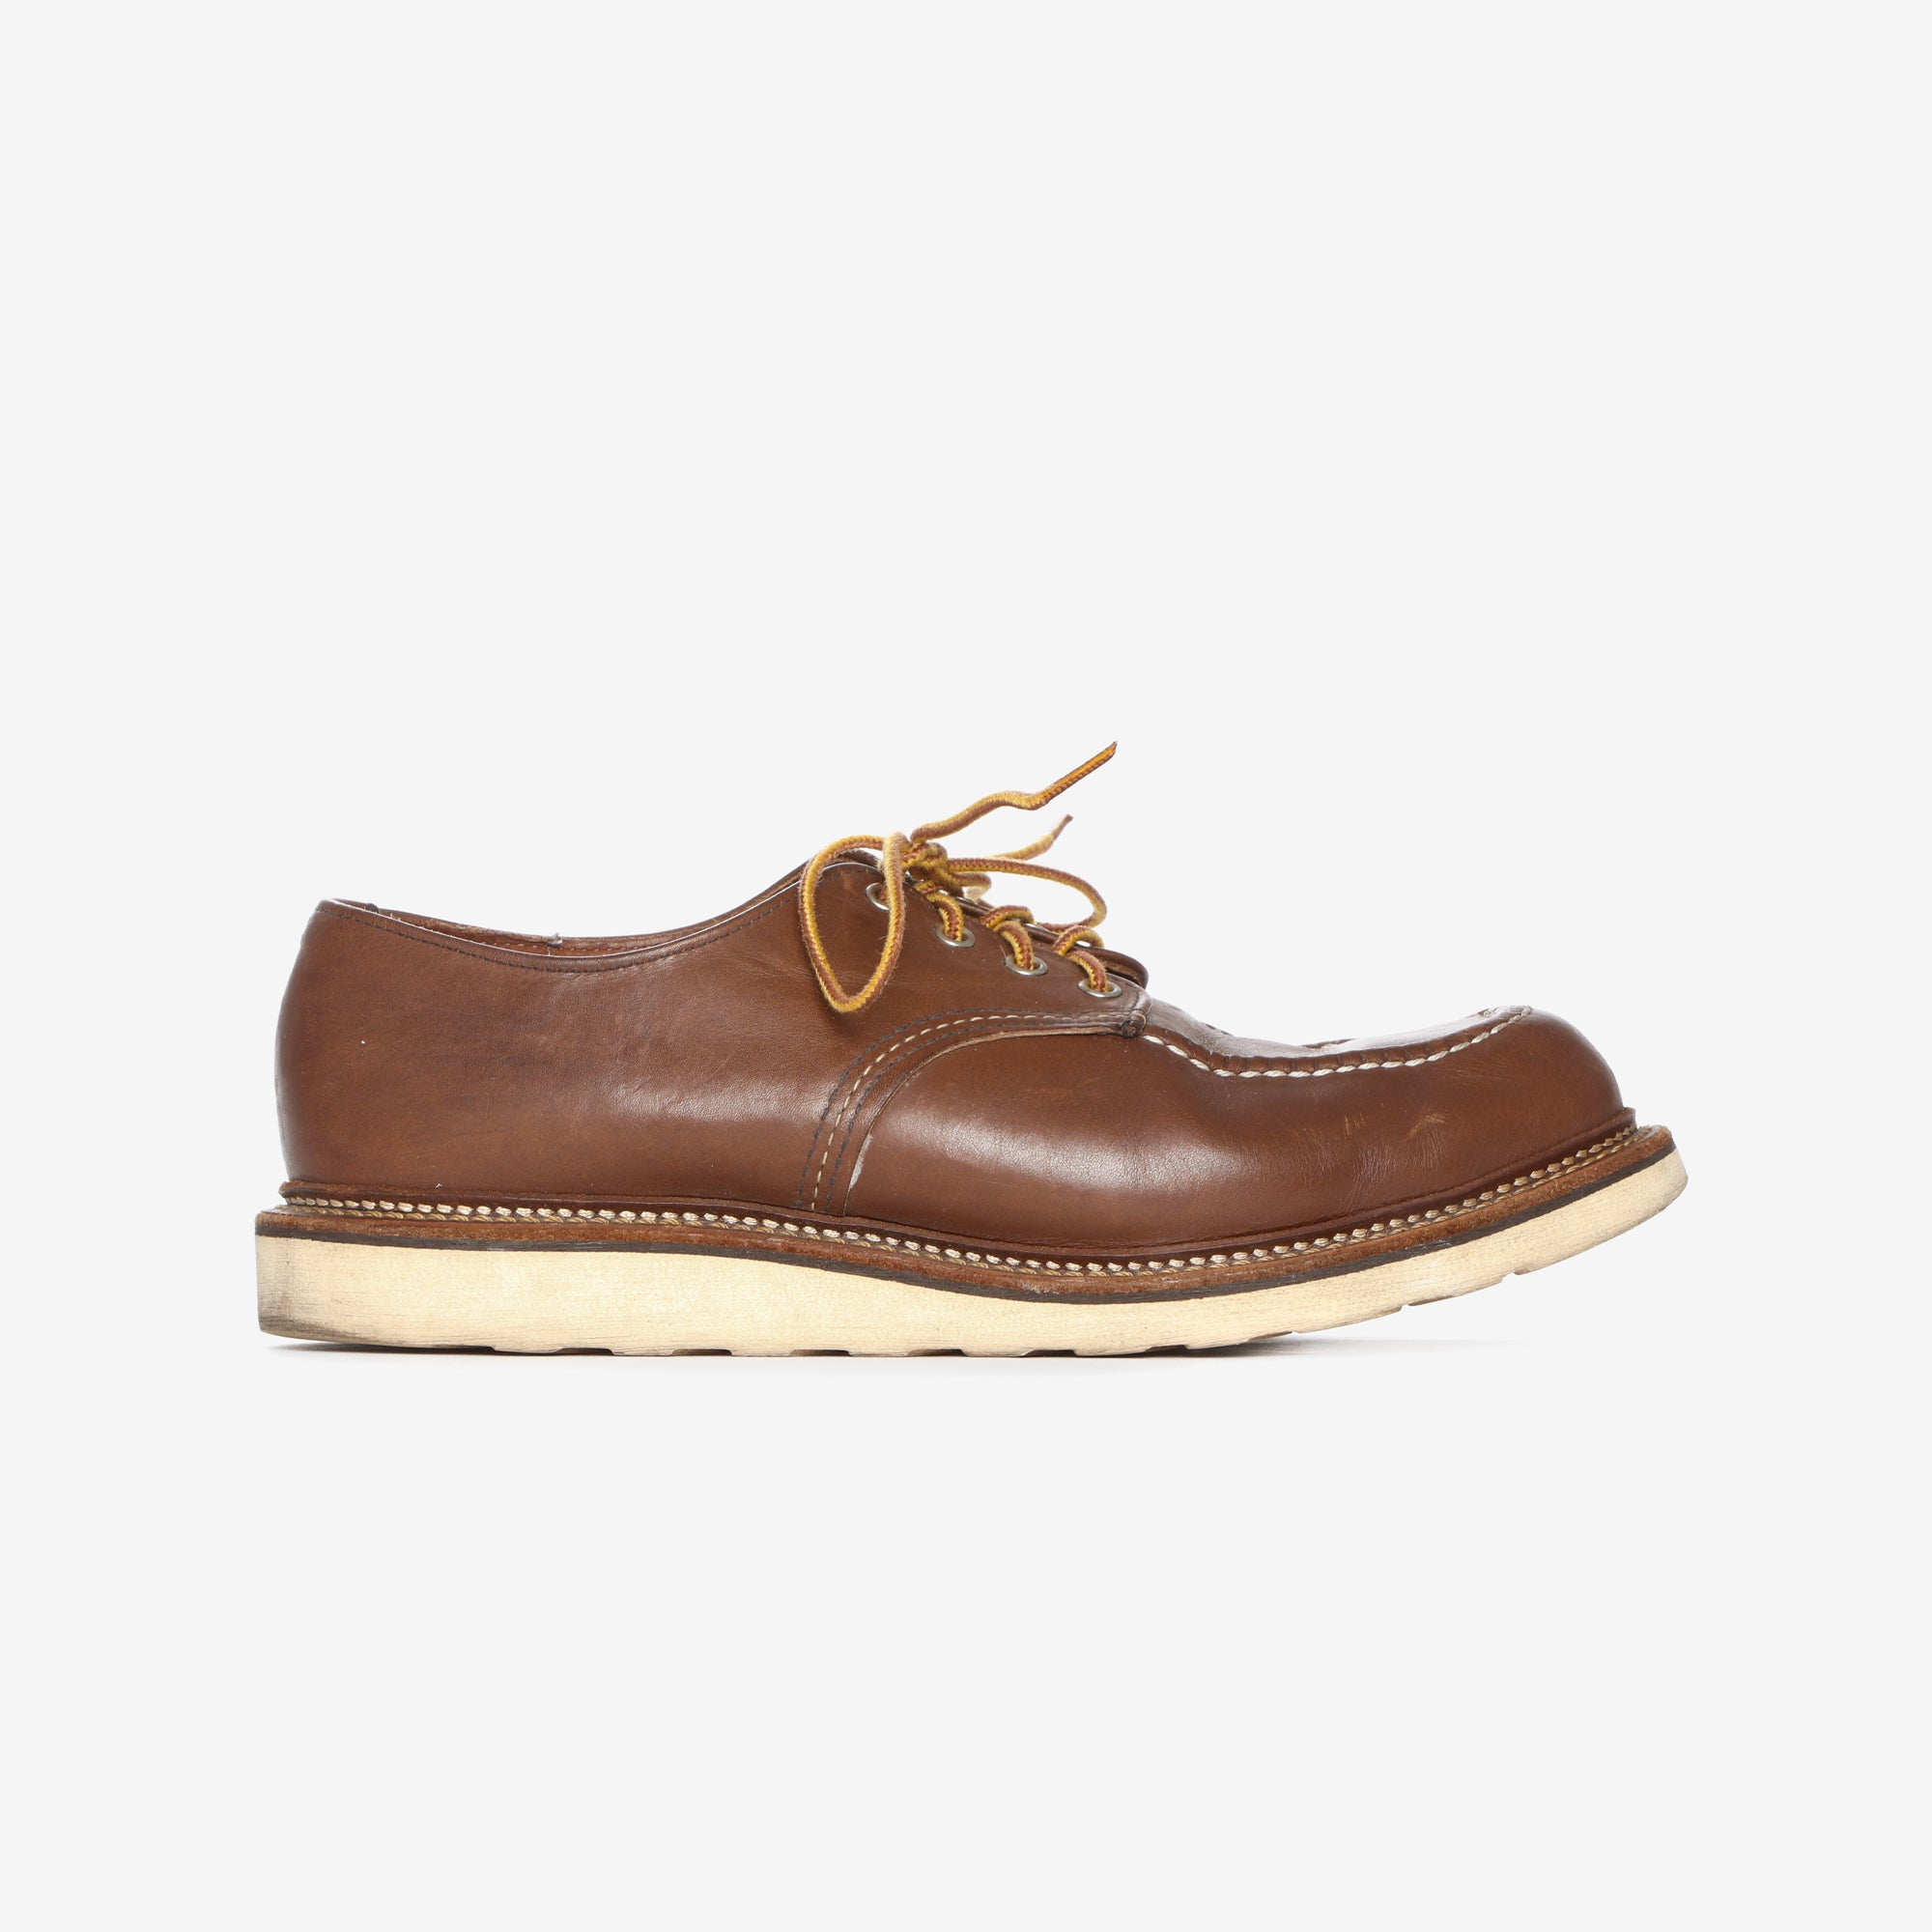 8109 Classic Oxford Shoes